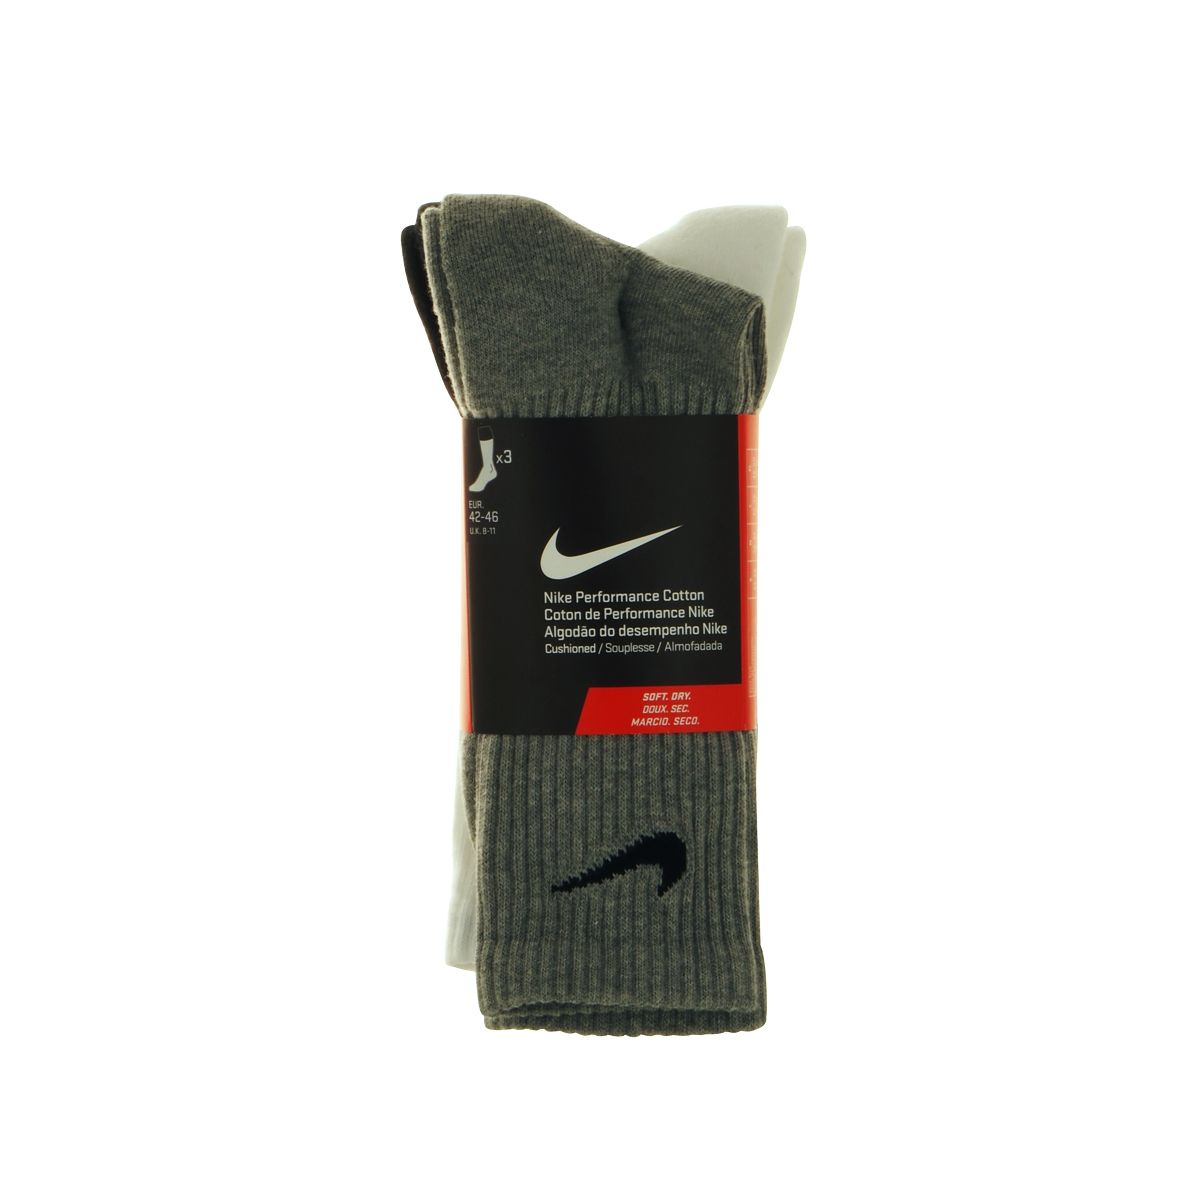 lot de 3 paires de chaussettes nike grises noires et blanches grande taille du 42 au 46 size. Black Bedroom Furniture Sets. Home Design Ideas